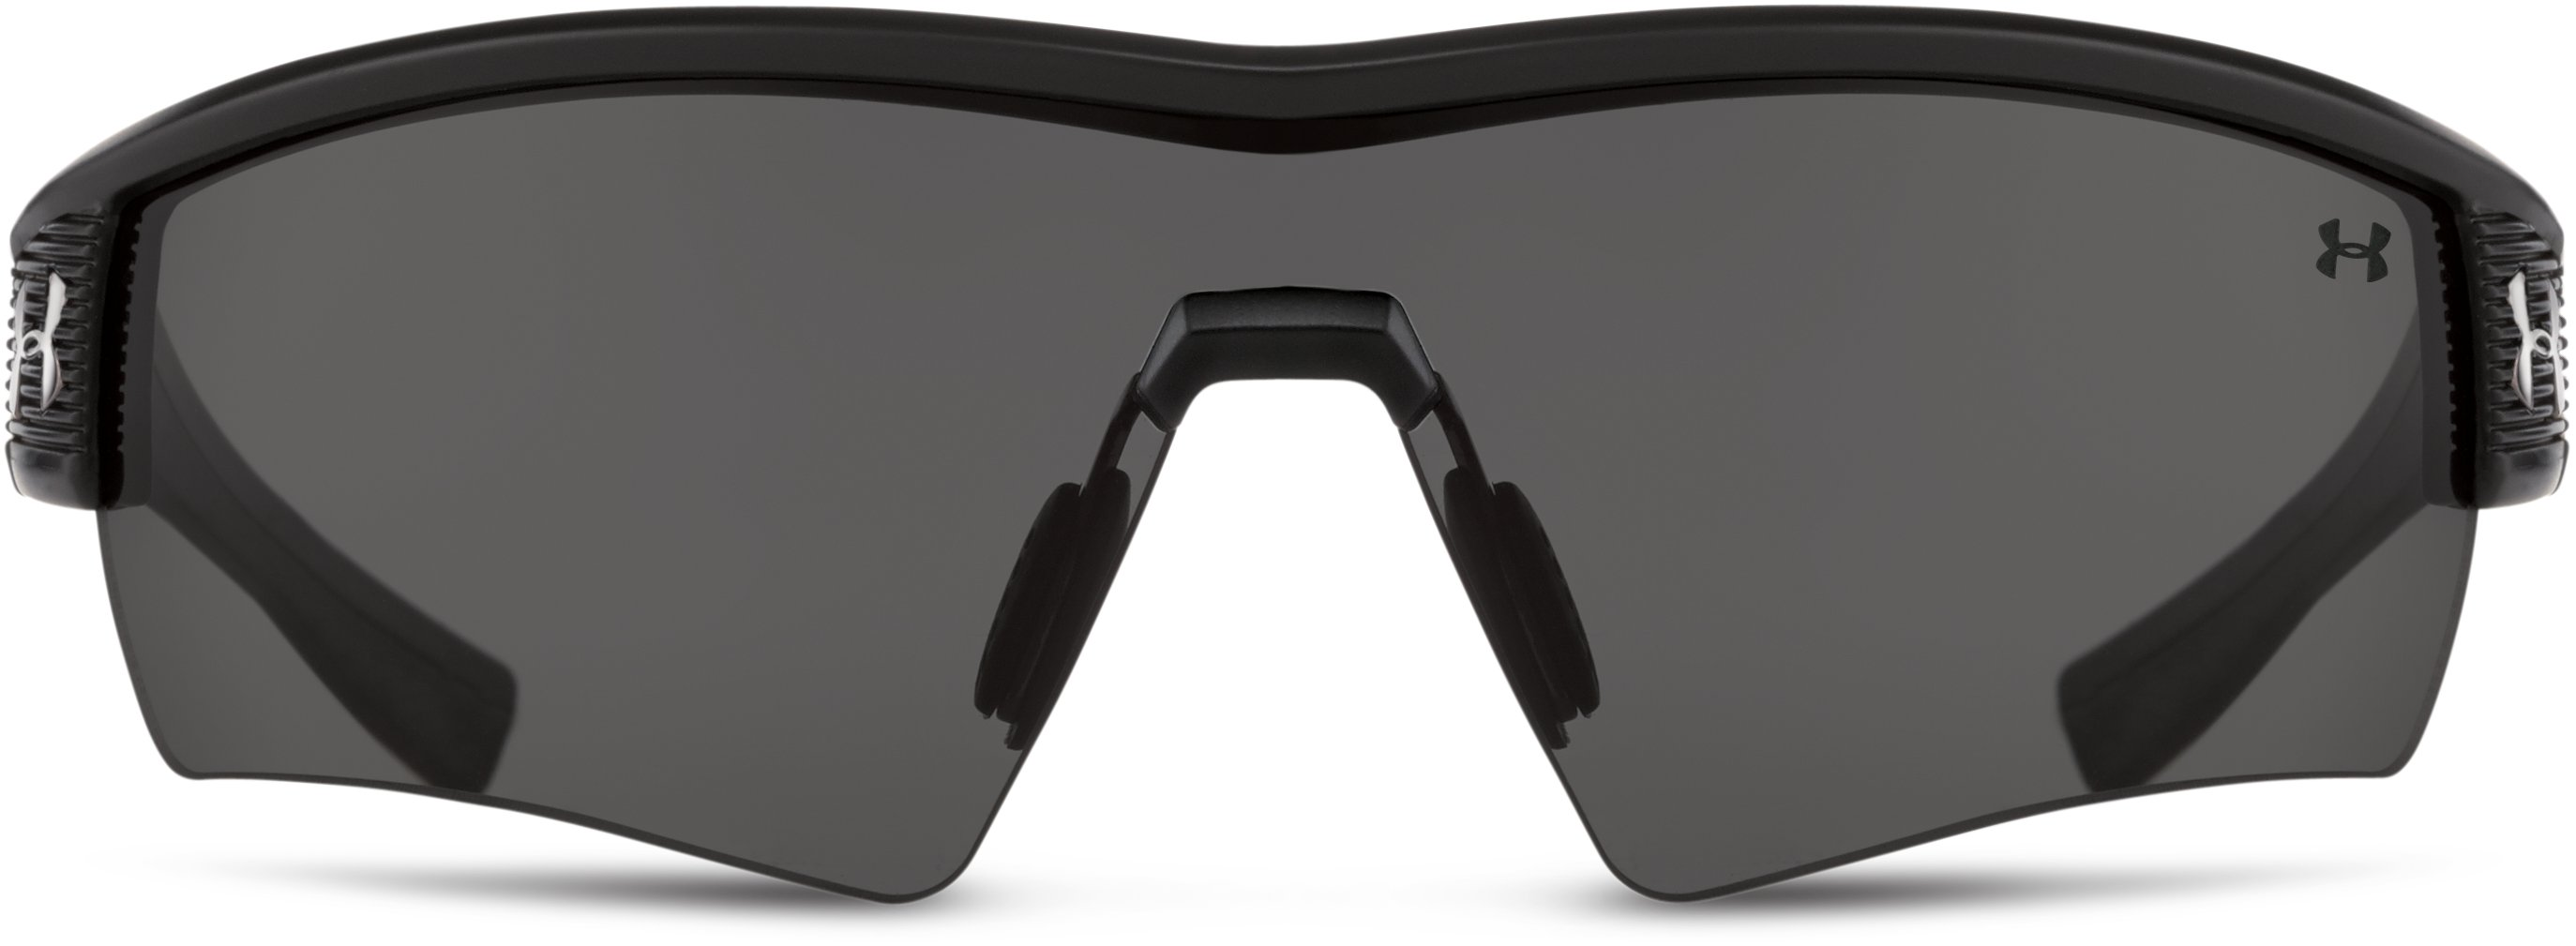 UA Fire Sunglasses, Satin Black, undefined